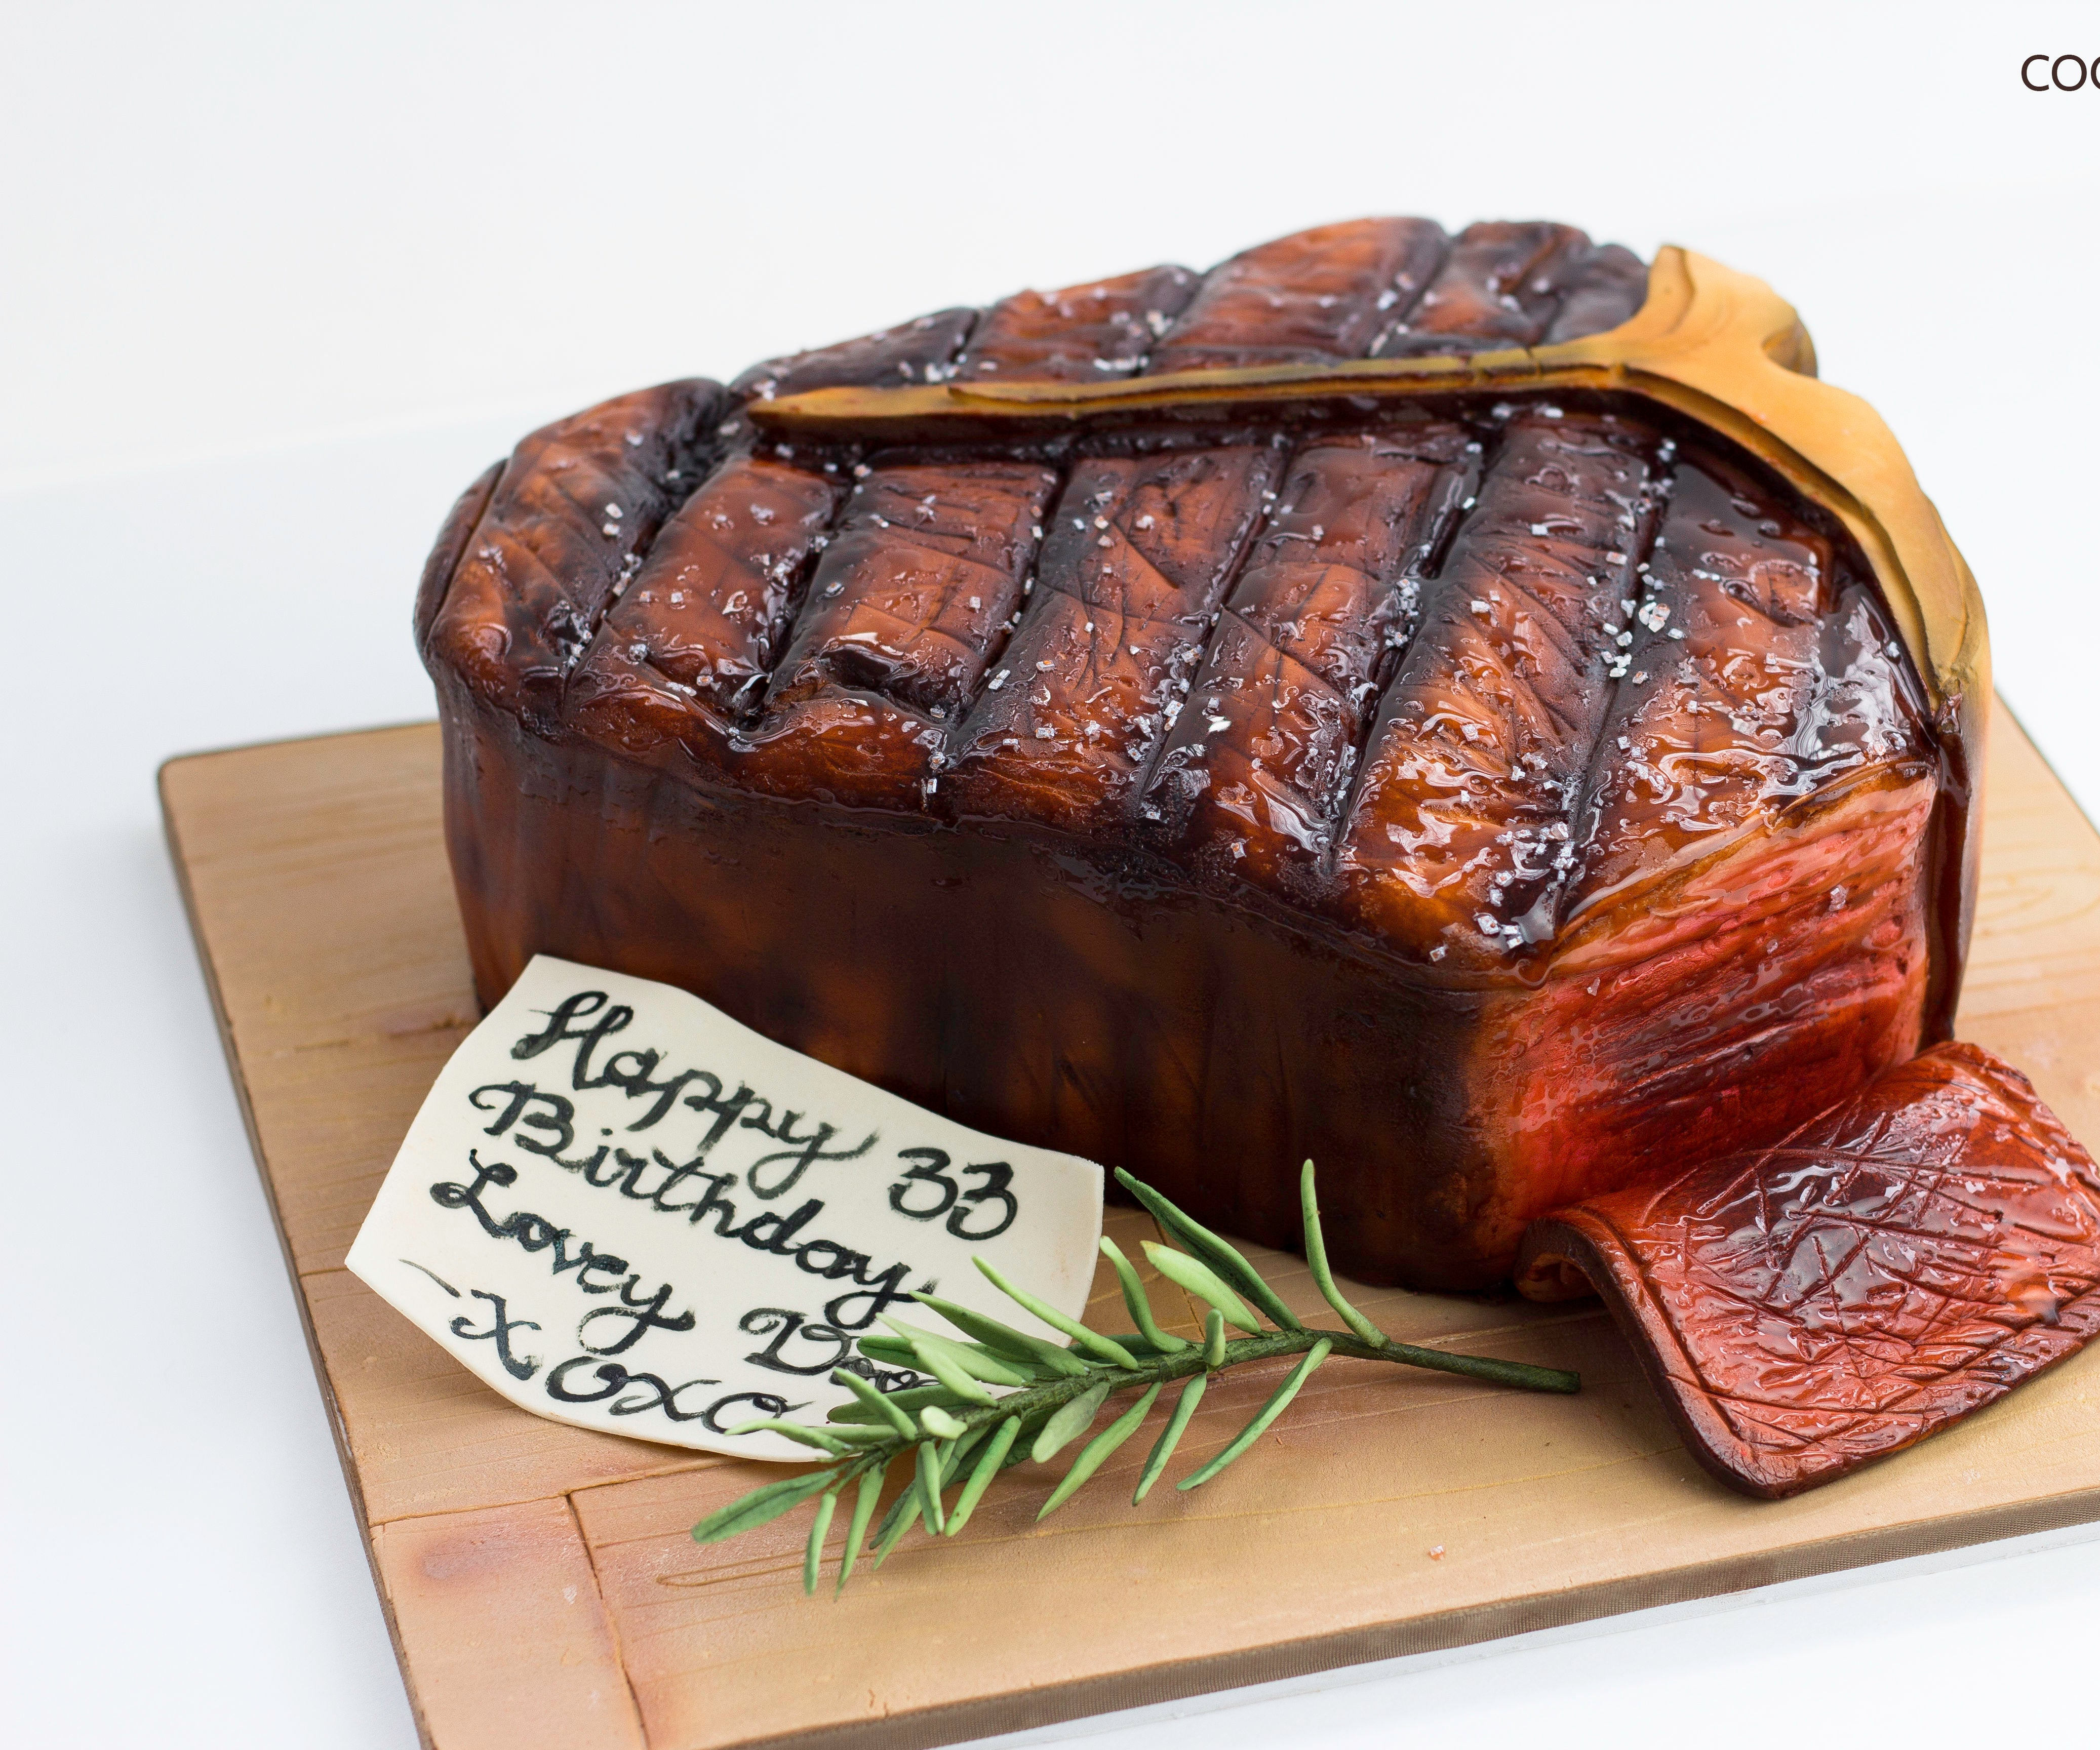 Outstanding Realistic Porterhouse Steak Cake 7 Steps With Pictures Funny Birthday Cards Online Inifofree Goldxyz